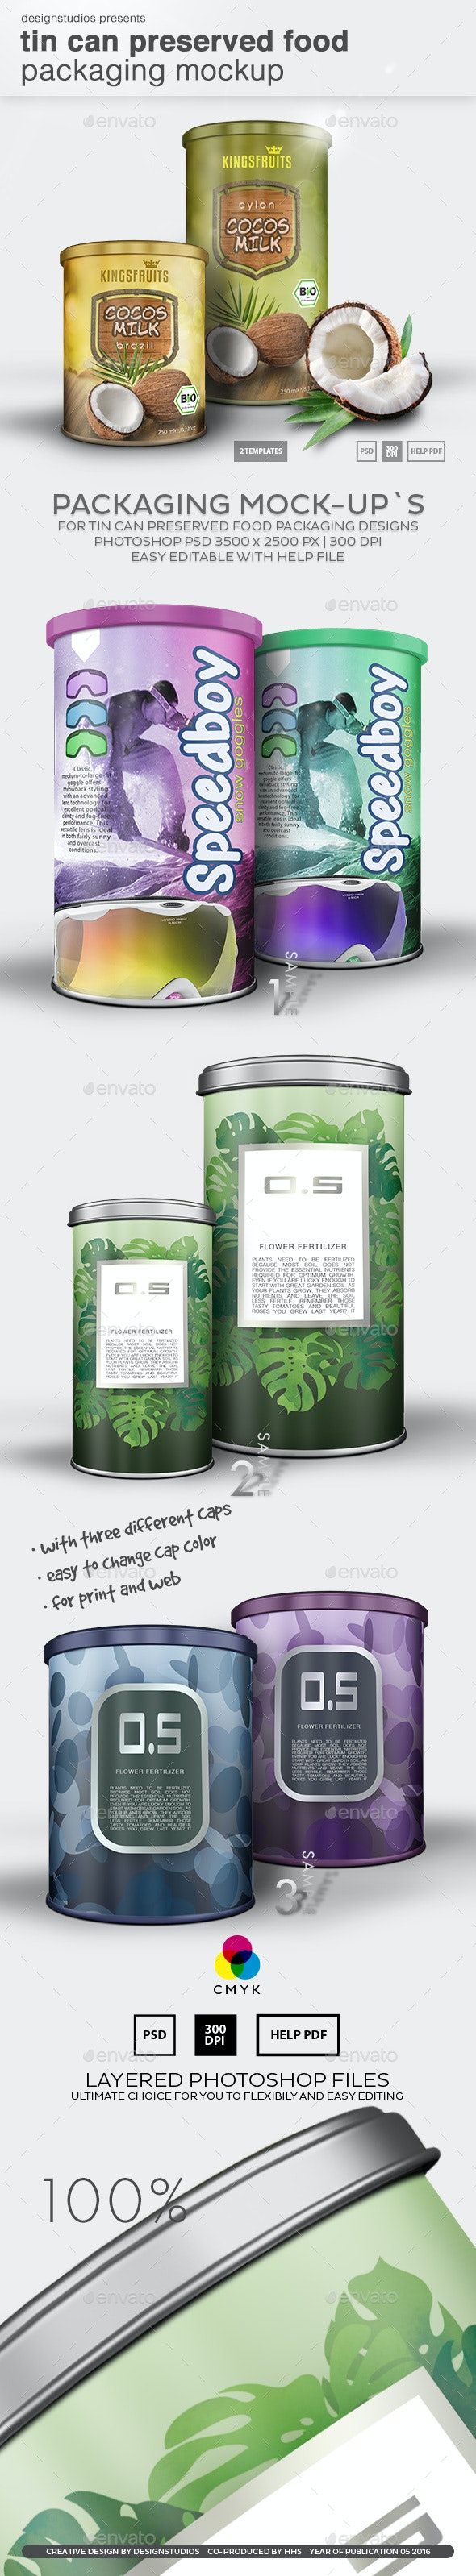 Tin Can Preserved Food Packaging Mock-Up - Product Mock-Ups Graphics